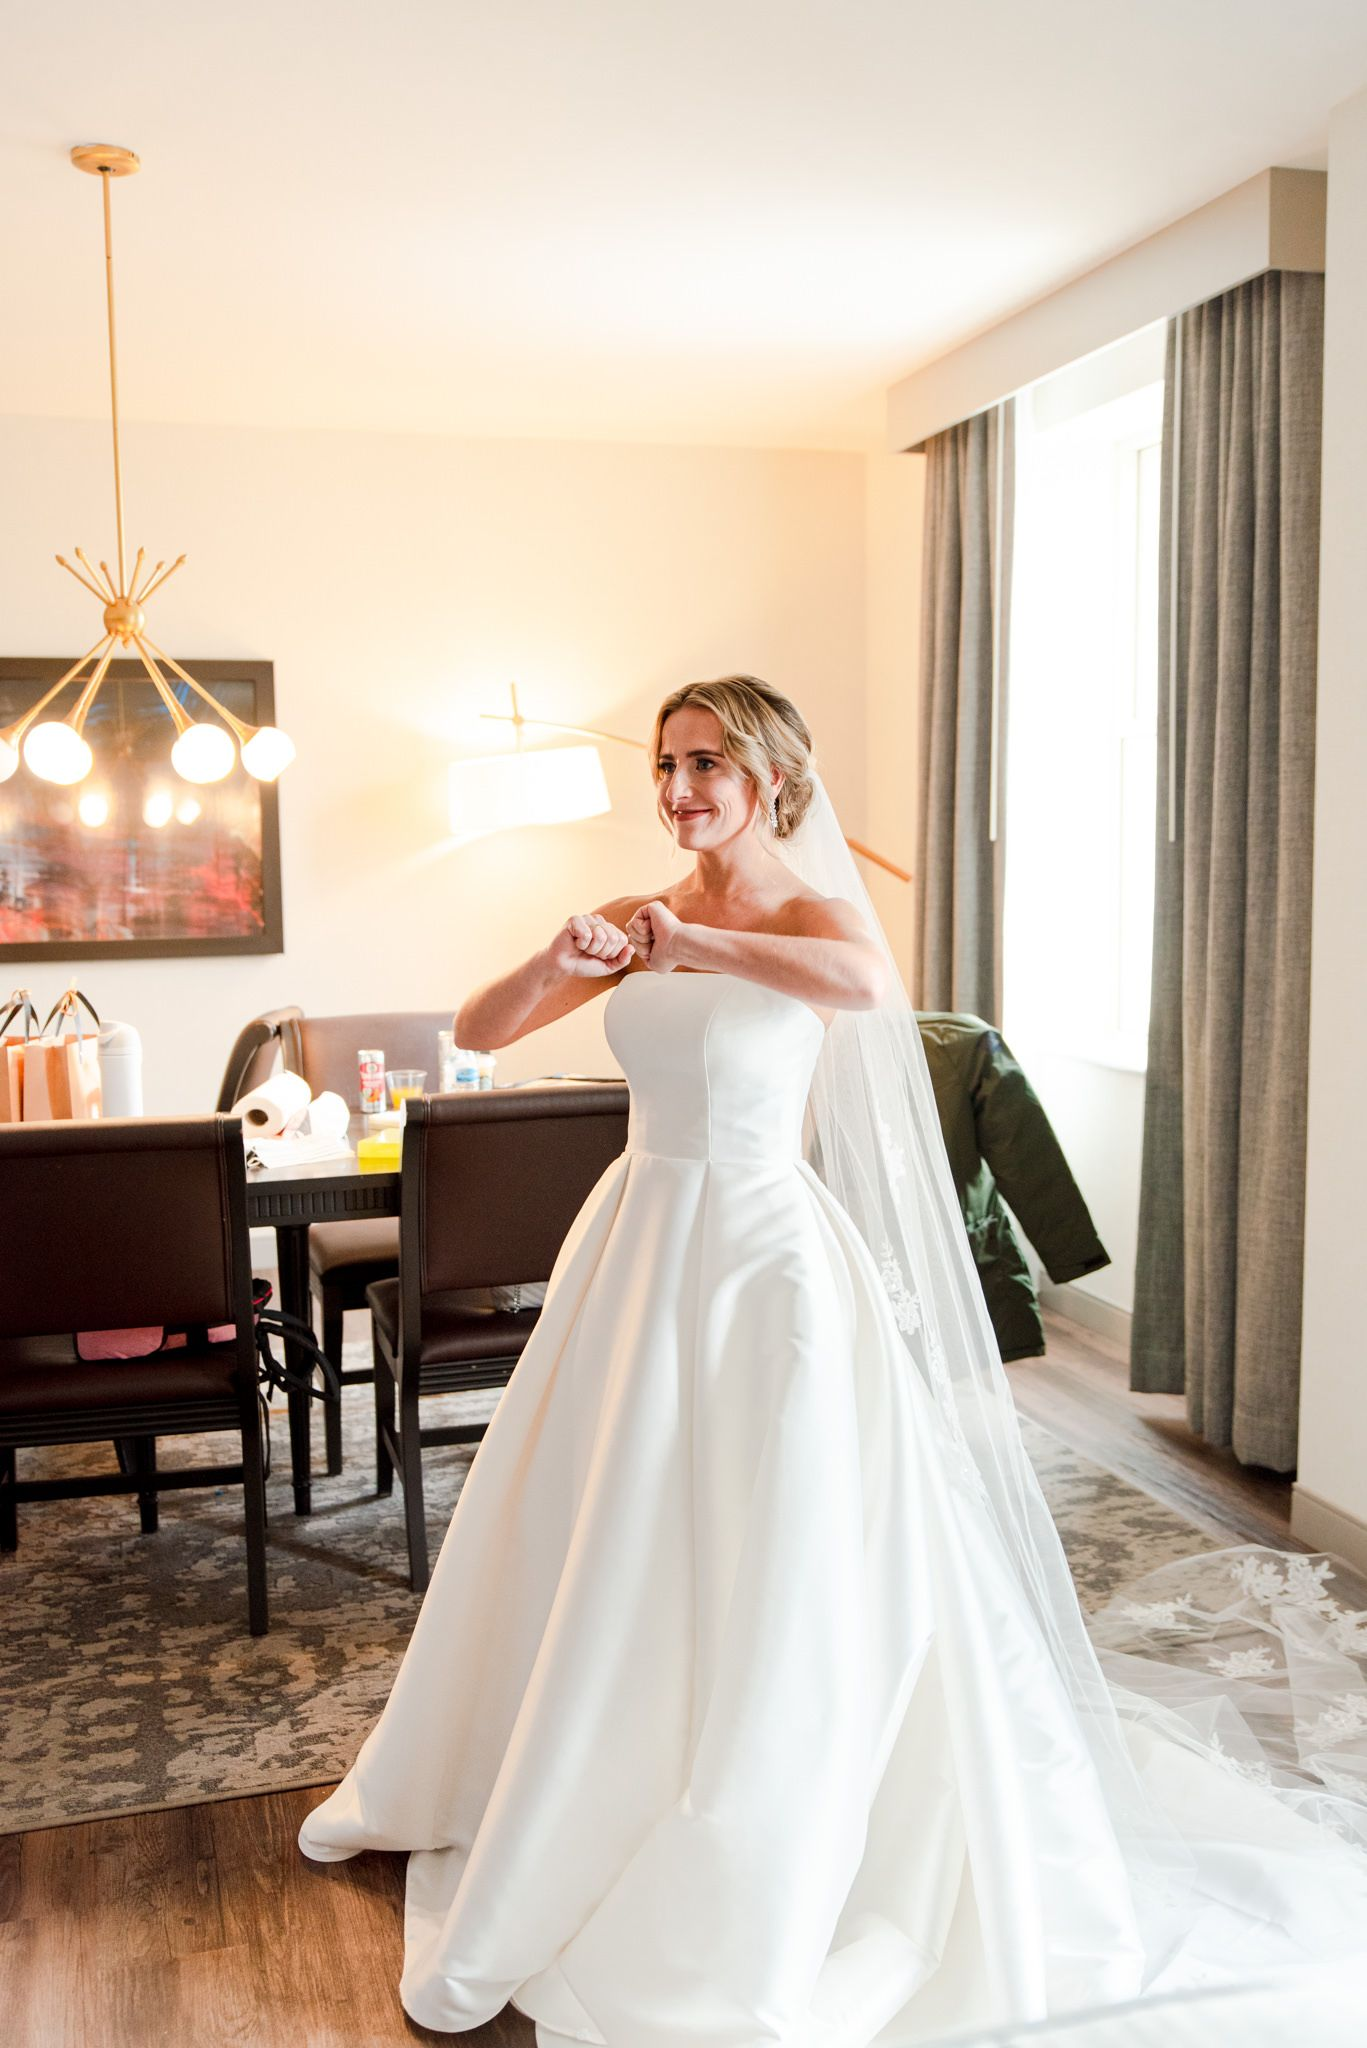 blonde bride dancing in hotel room after the first look with her bridesmaids